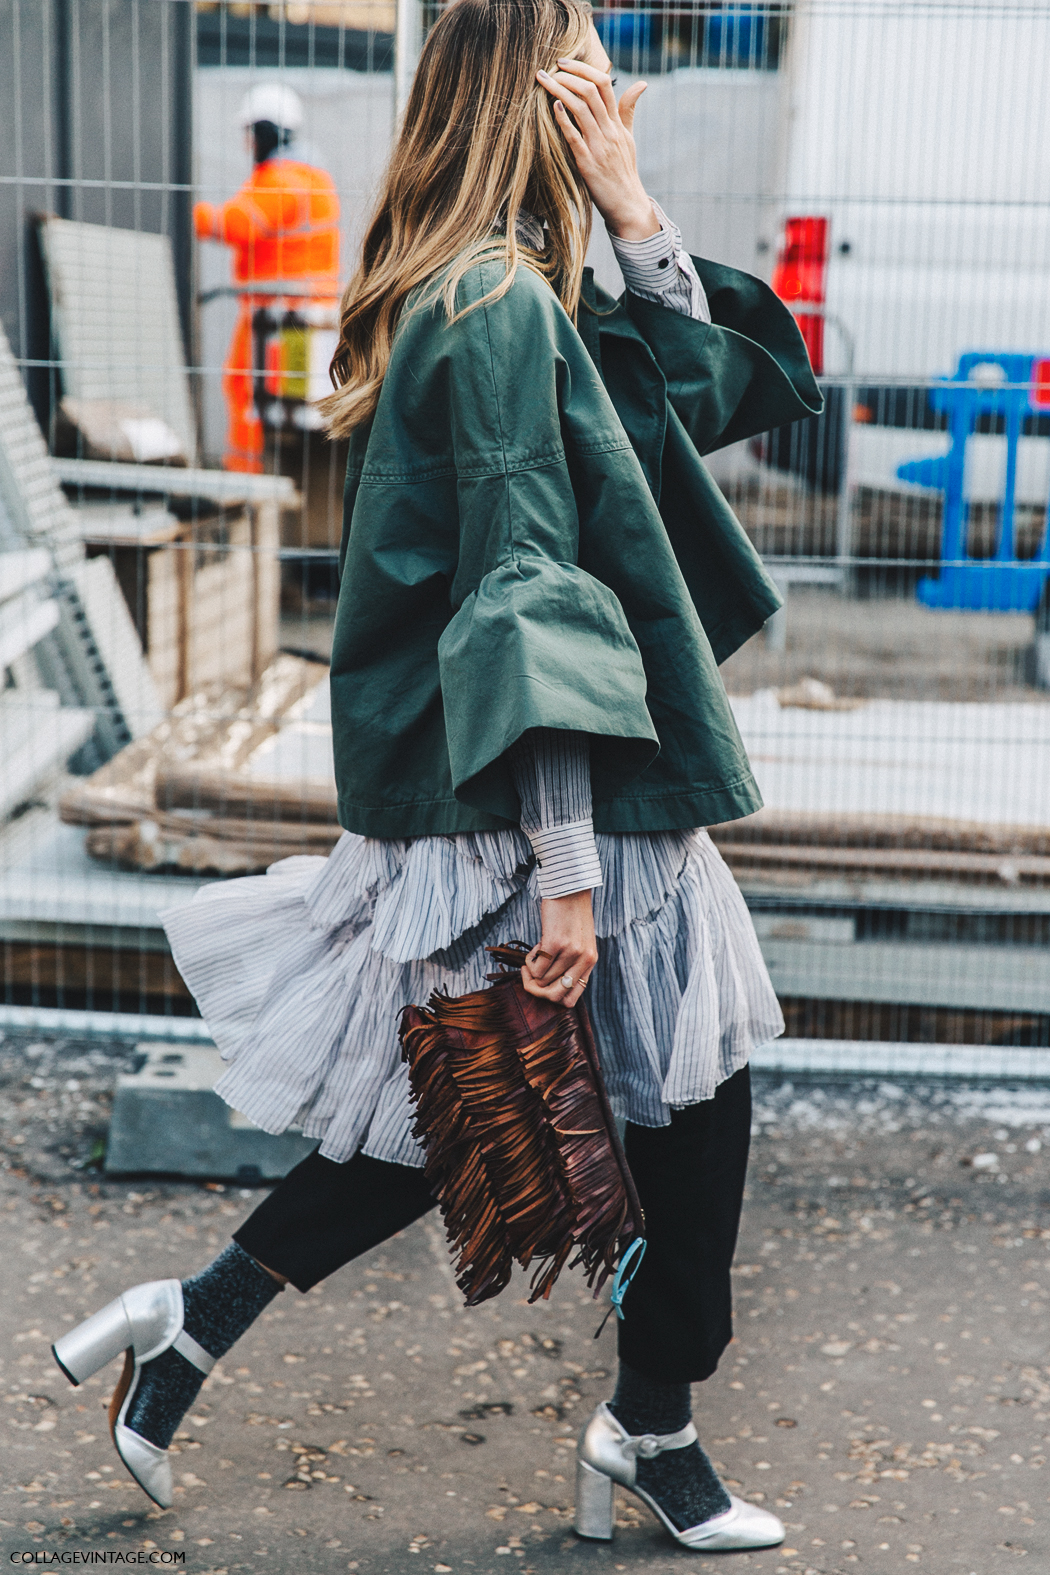 LFW London Fashion Week Fall 16 Street Style Collage Vintage Ruffled Outfit Silver Shoes Mettalic Glitter Socks